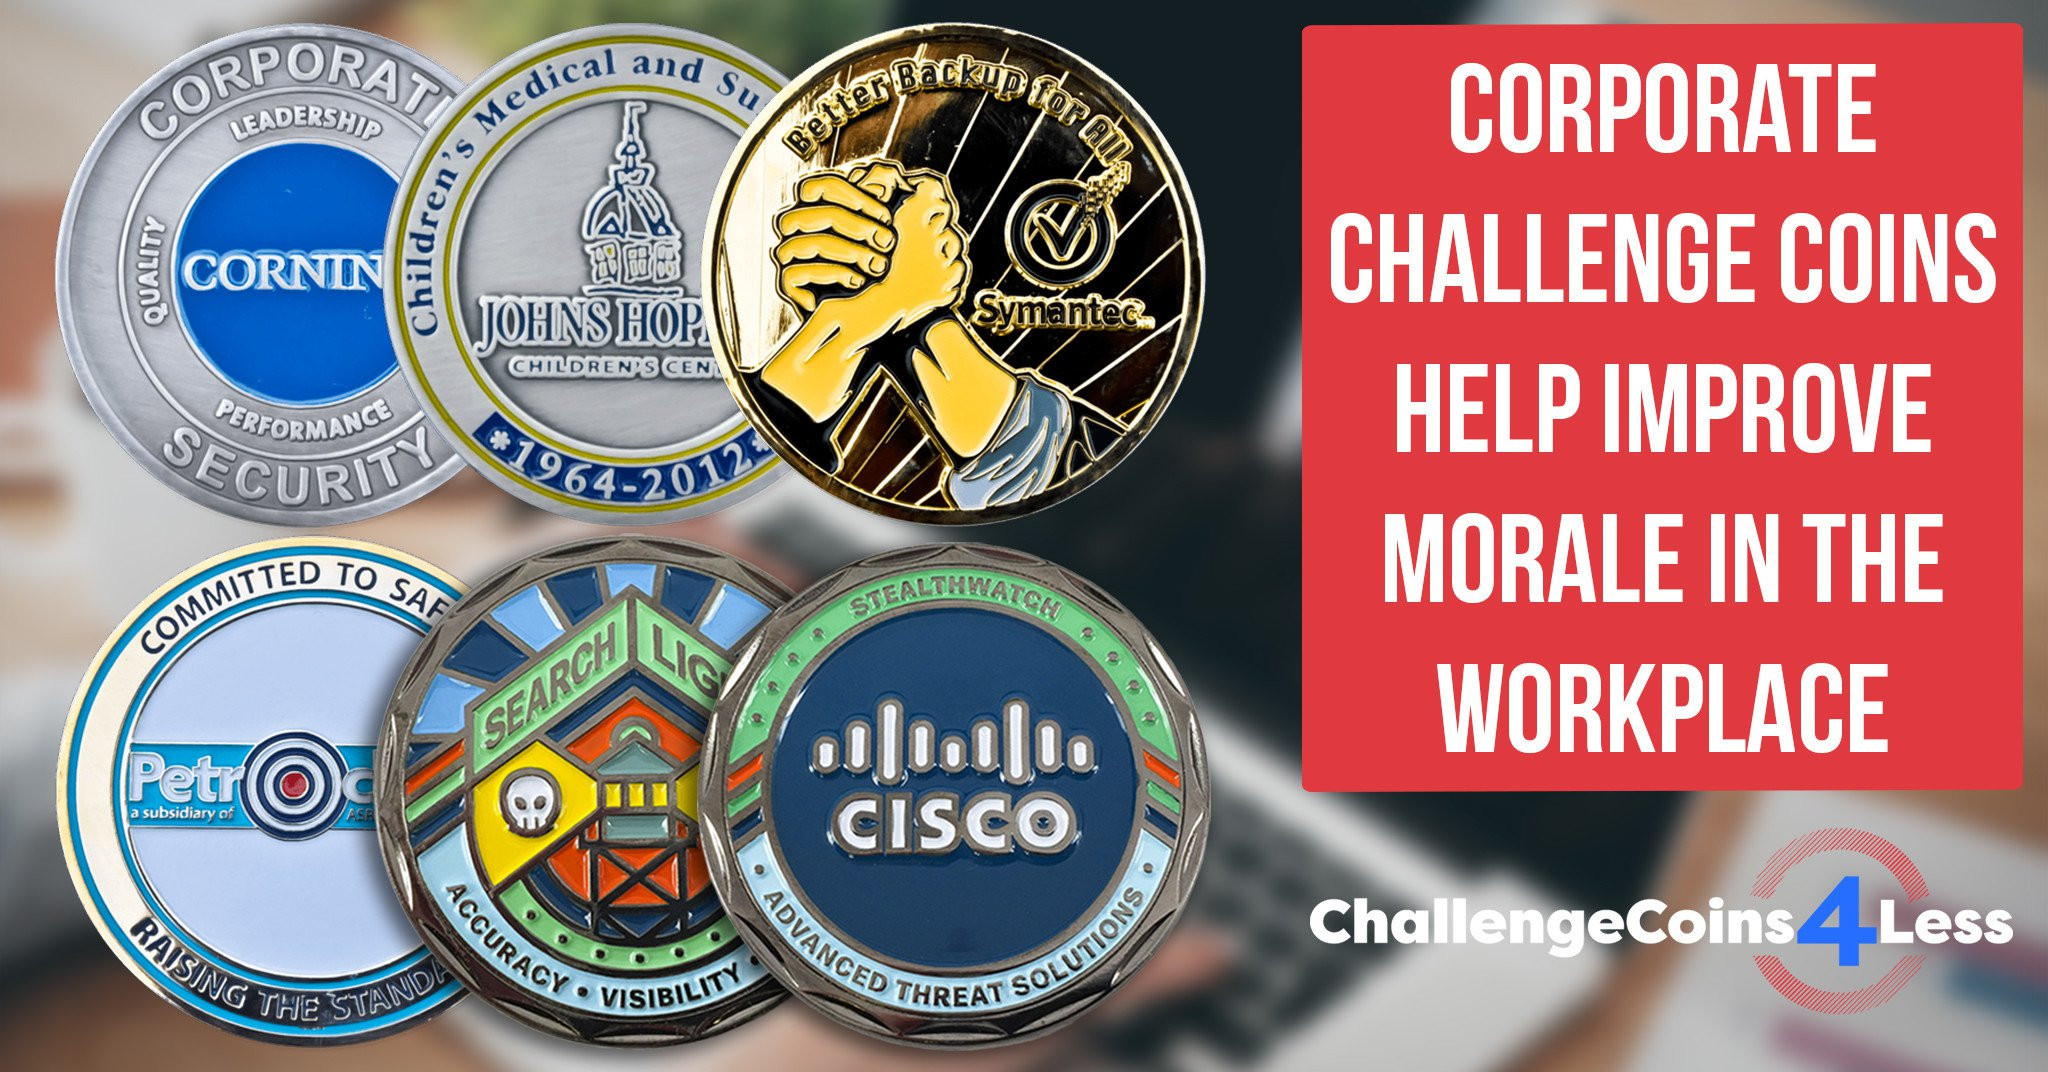 Corporate Challenge Coins Improve Morale At The Workplace